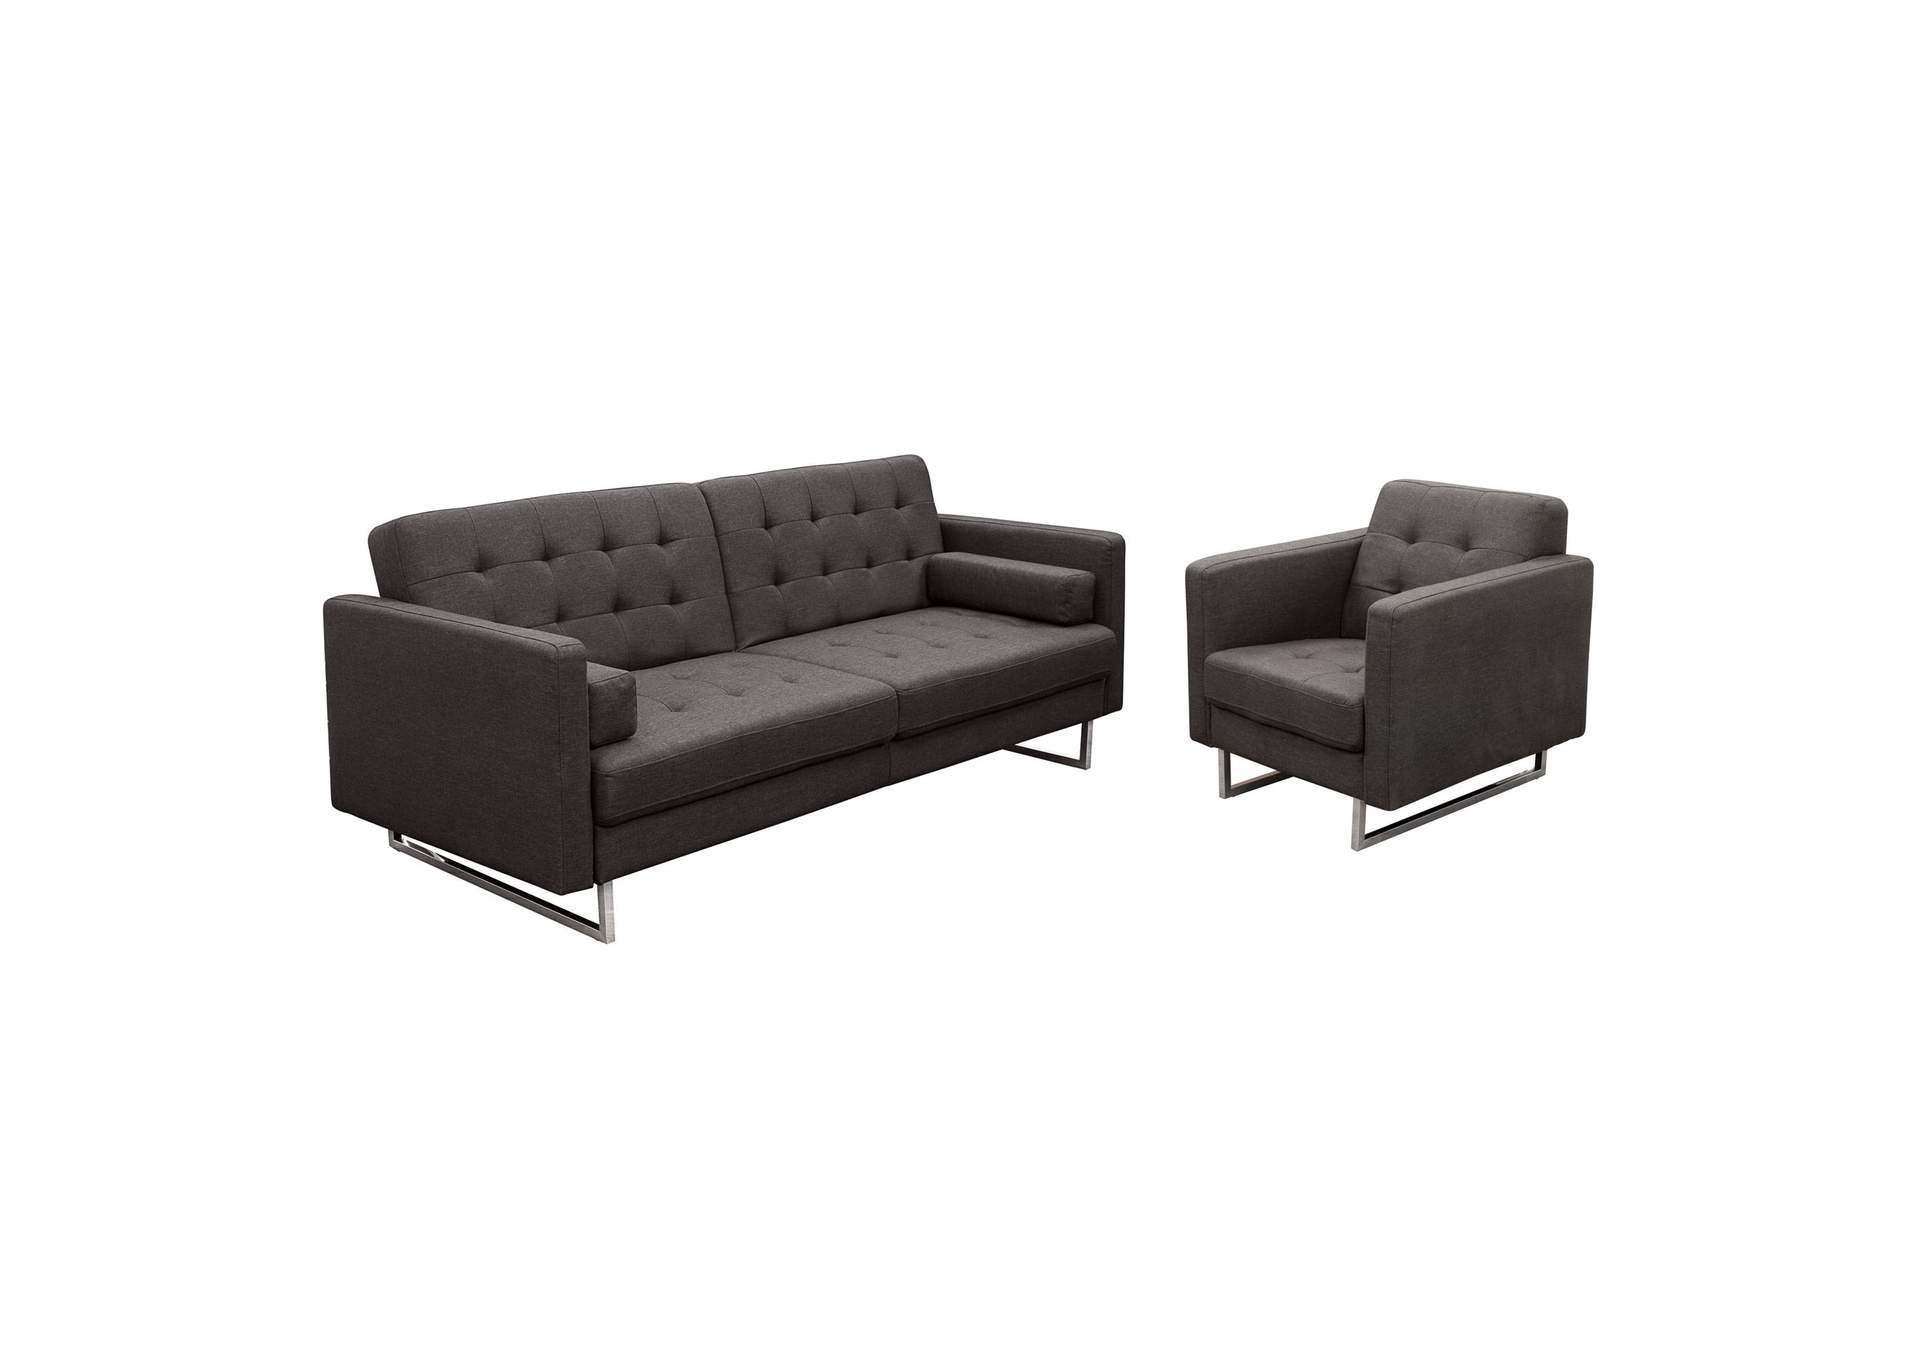 Opus Convertible Tufted Sofa with Chair 2PC Set,Diamond Sofa